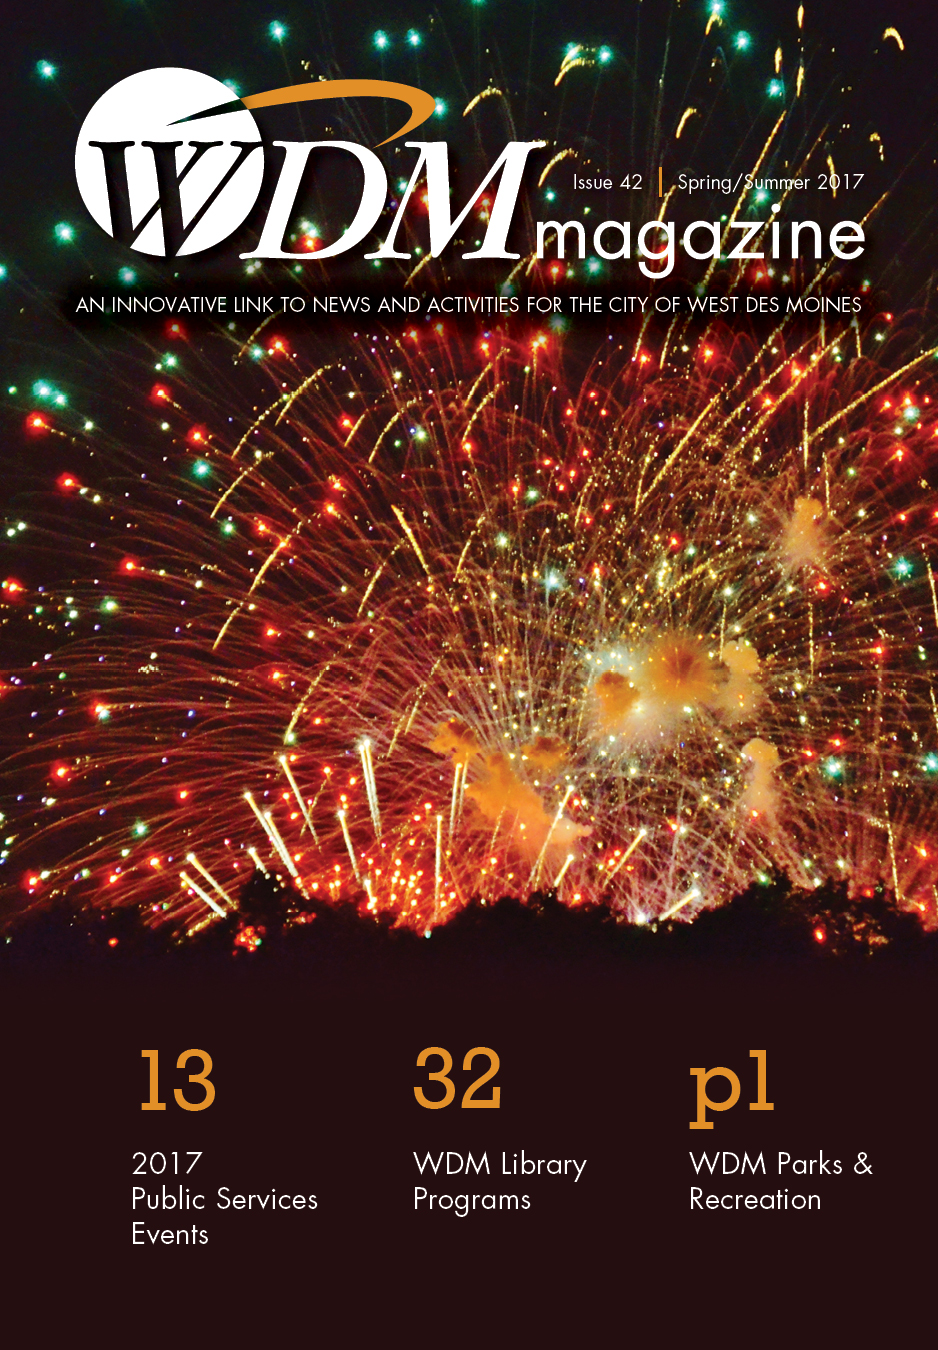 WDM_MAG_42_cover, Spring/Summer 2017